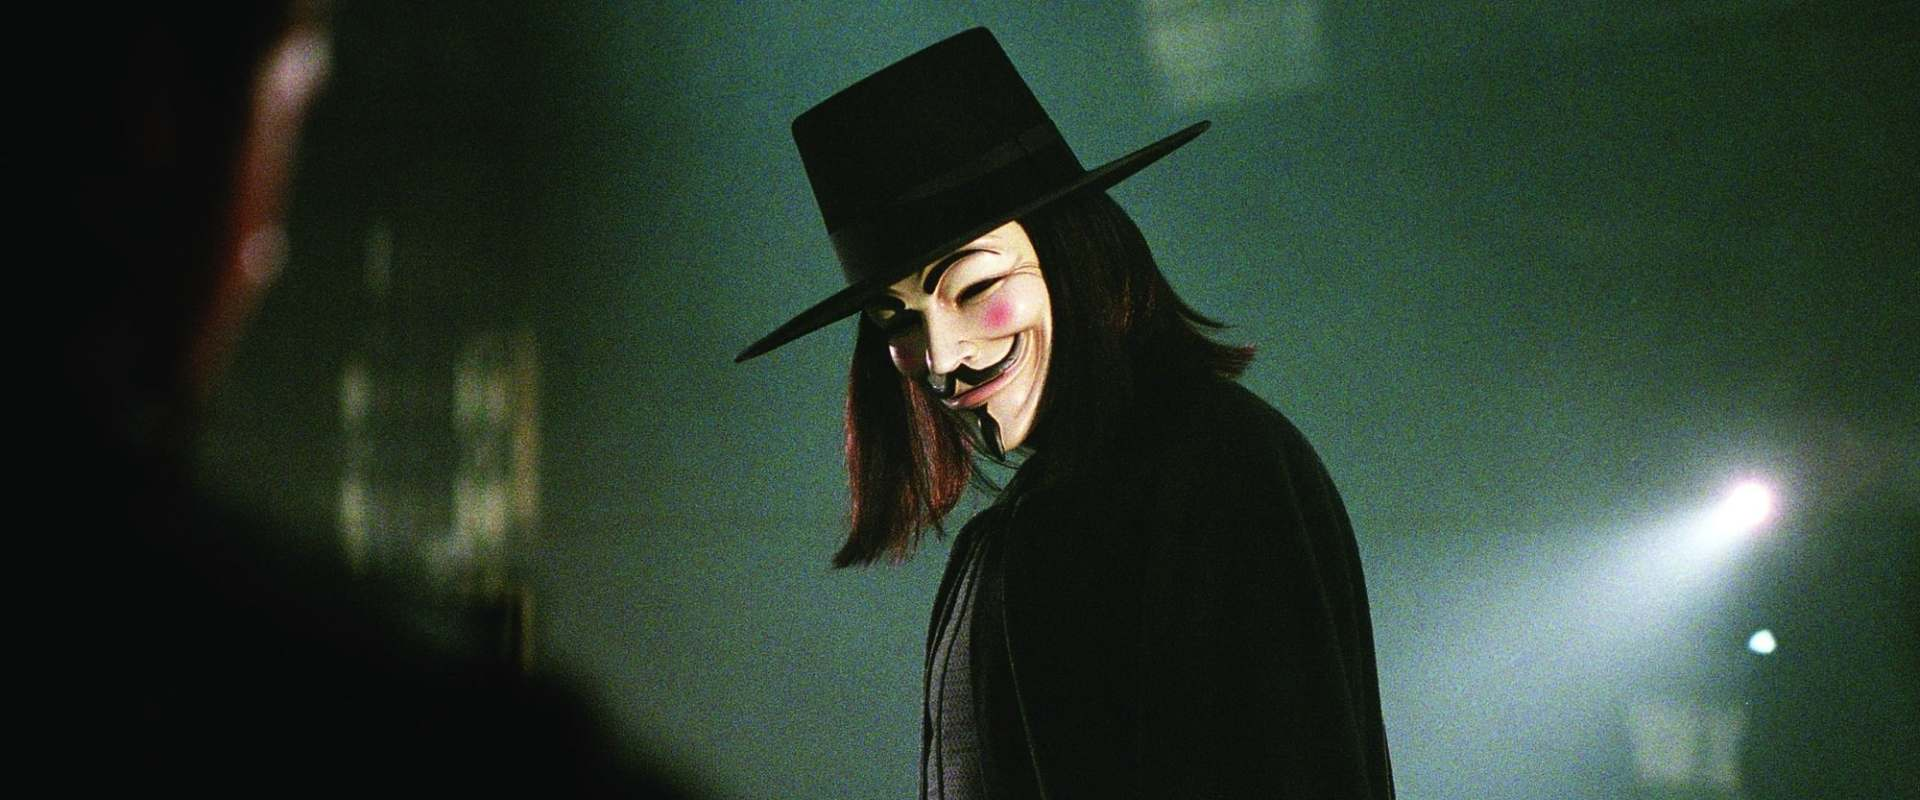 V for Vendetta background 2